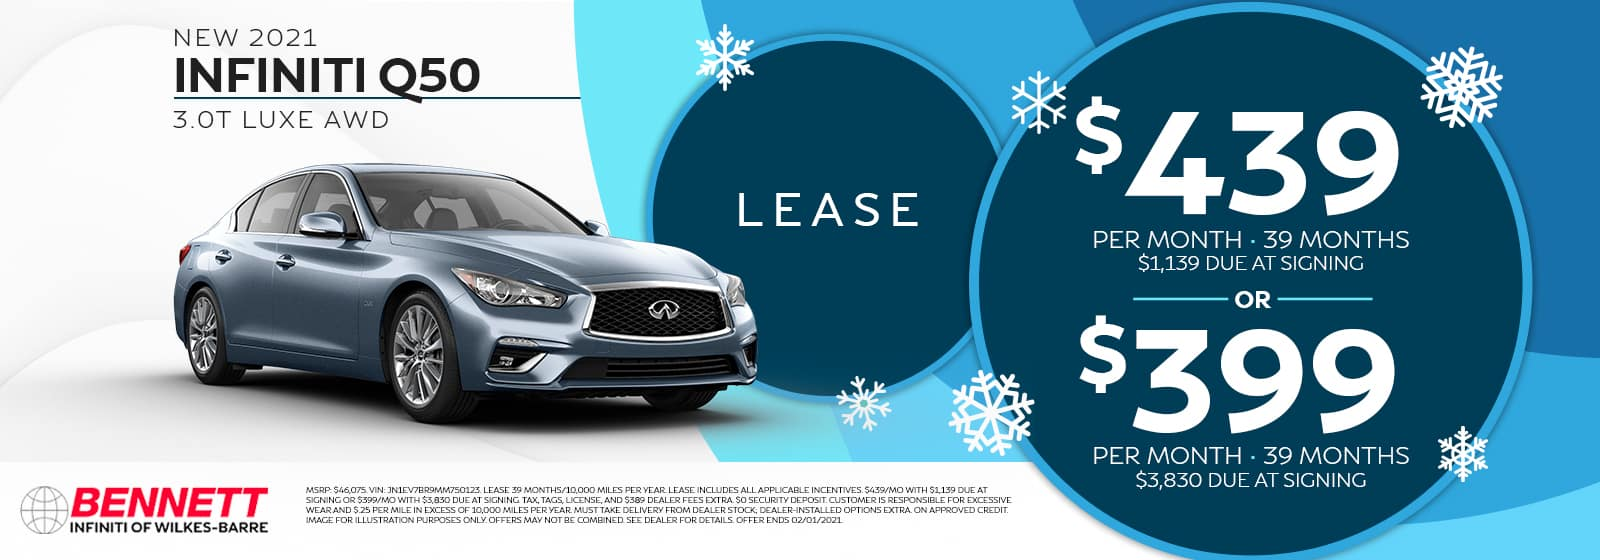 New 2021 INFINITI Q50 3.0T LUXE AWD - Lease for $439 per month for 39 months with $1,139 due at signing, OR for $399 per month for 39 months with $3,830 due at signing.